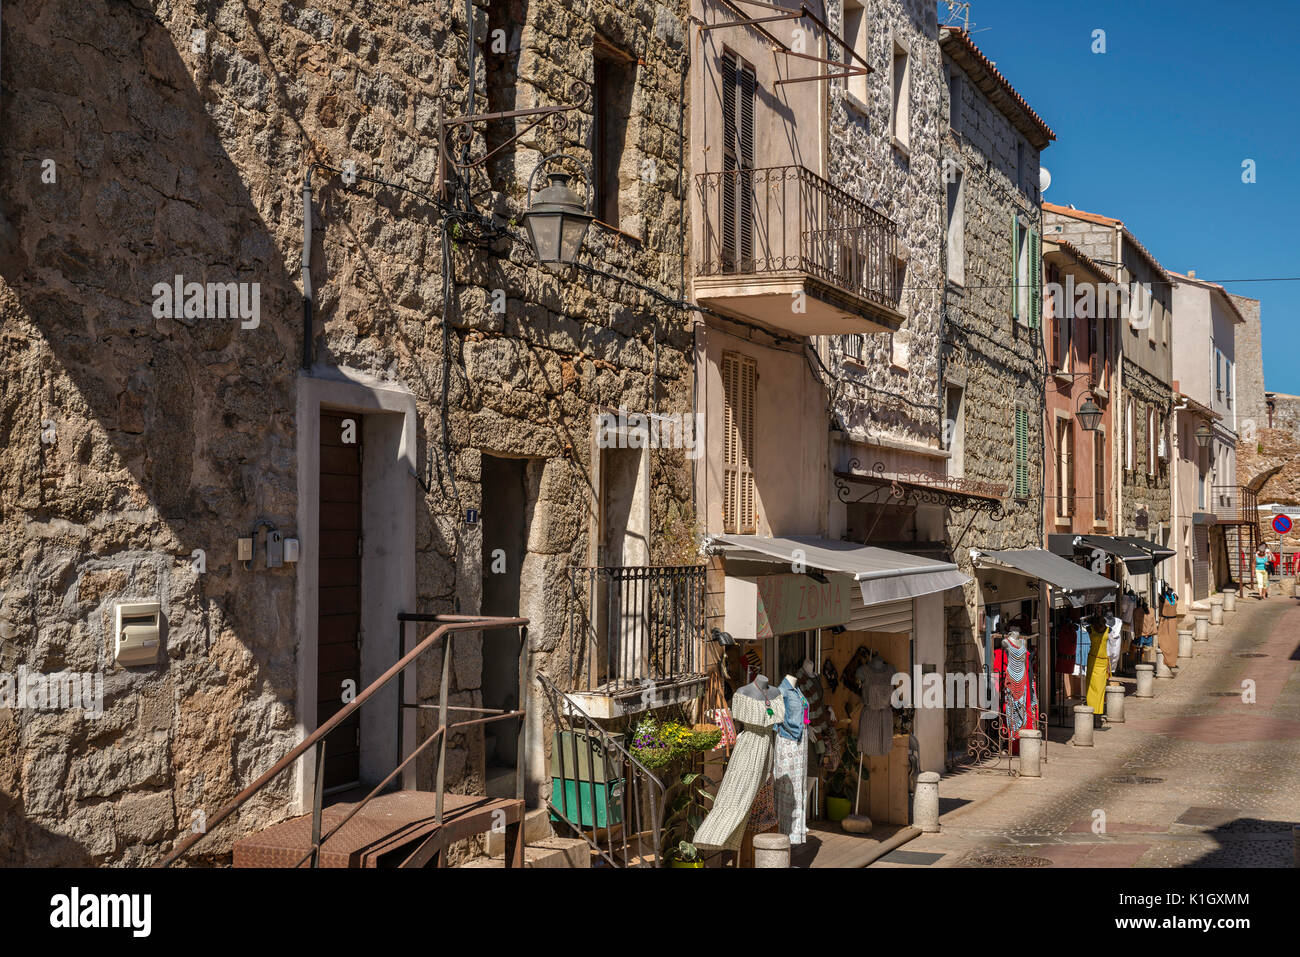 Rue de la Citadelle, old town hilltop section of Porto-Vecchio, Corsica, France - Stock Image